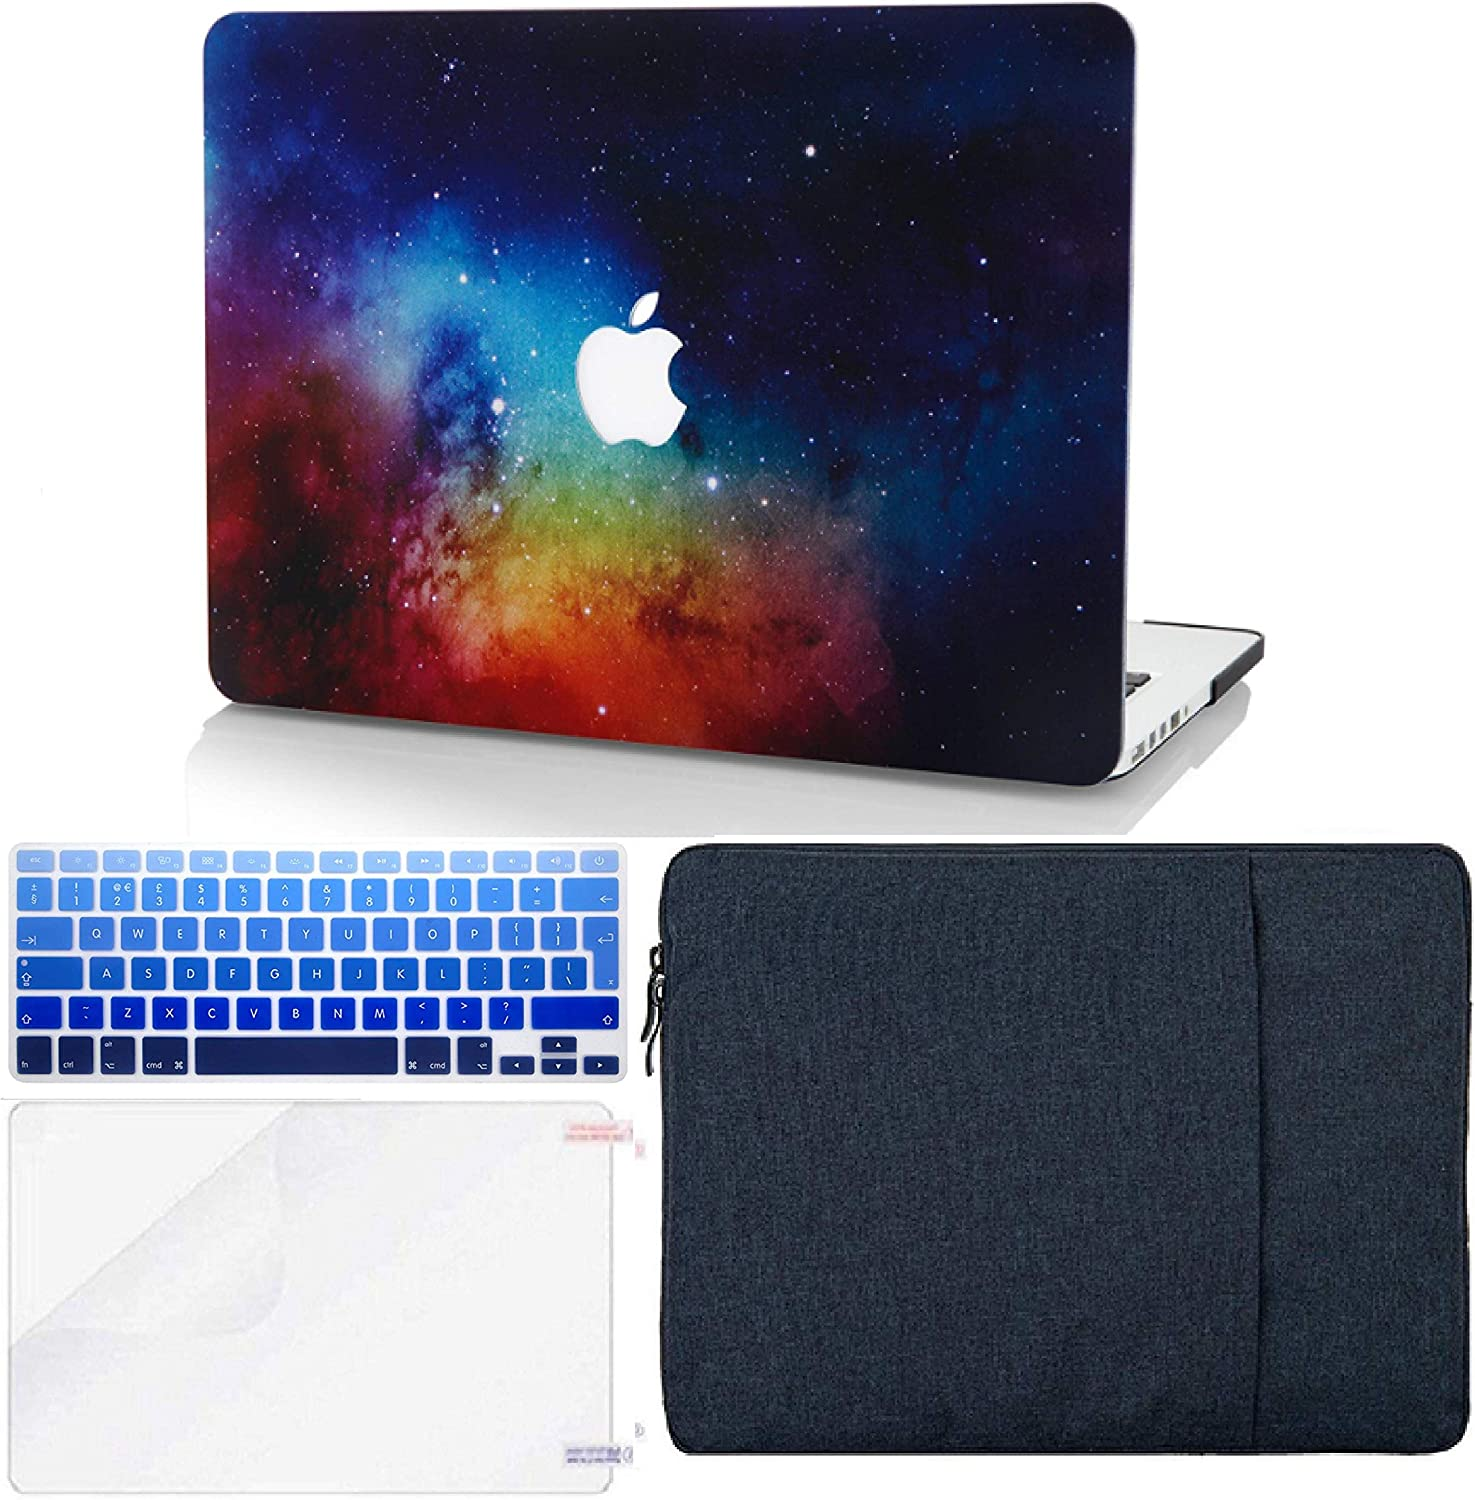 "KECC Laptop Case for MacBook Pro 13"" (2020, Touch Bar) w/Keyboard Cover + Sleeve + Screen Protector (4 in 1 Bundle) Hard Shell A2289/A2251 (Night Dream)"